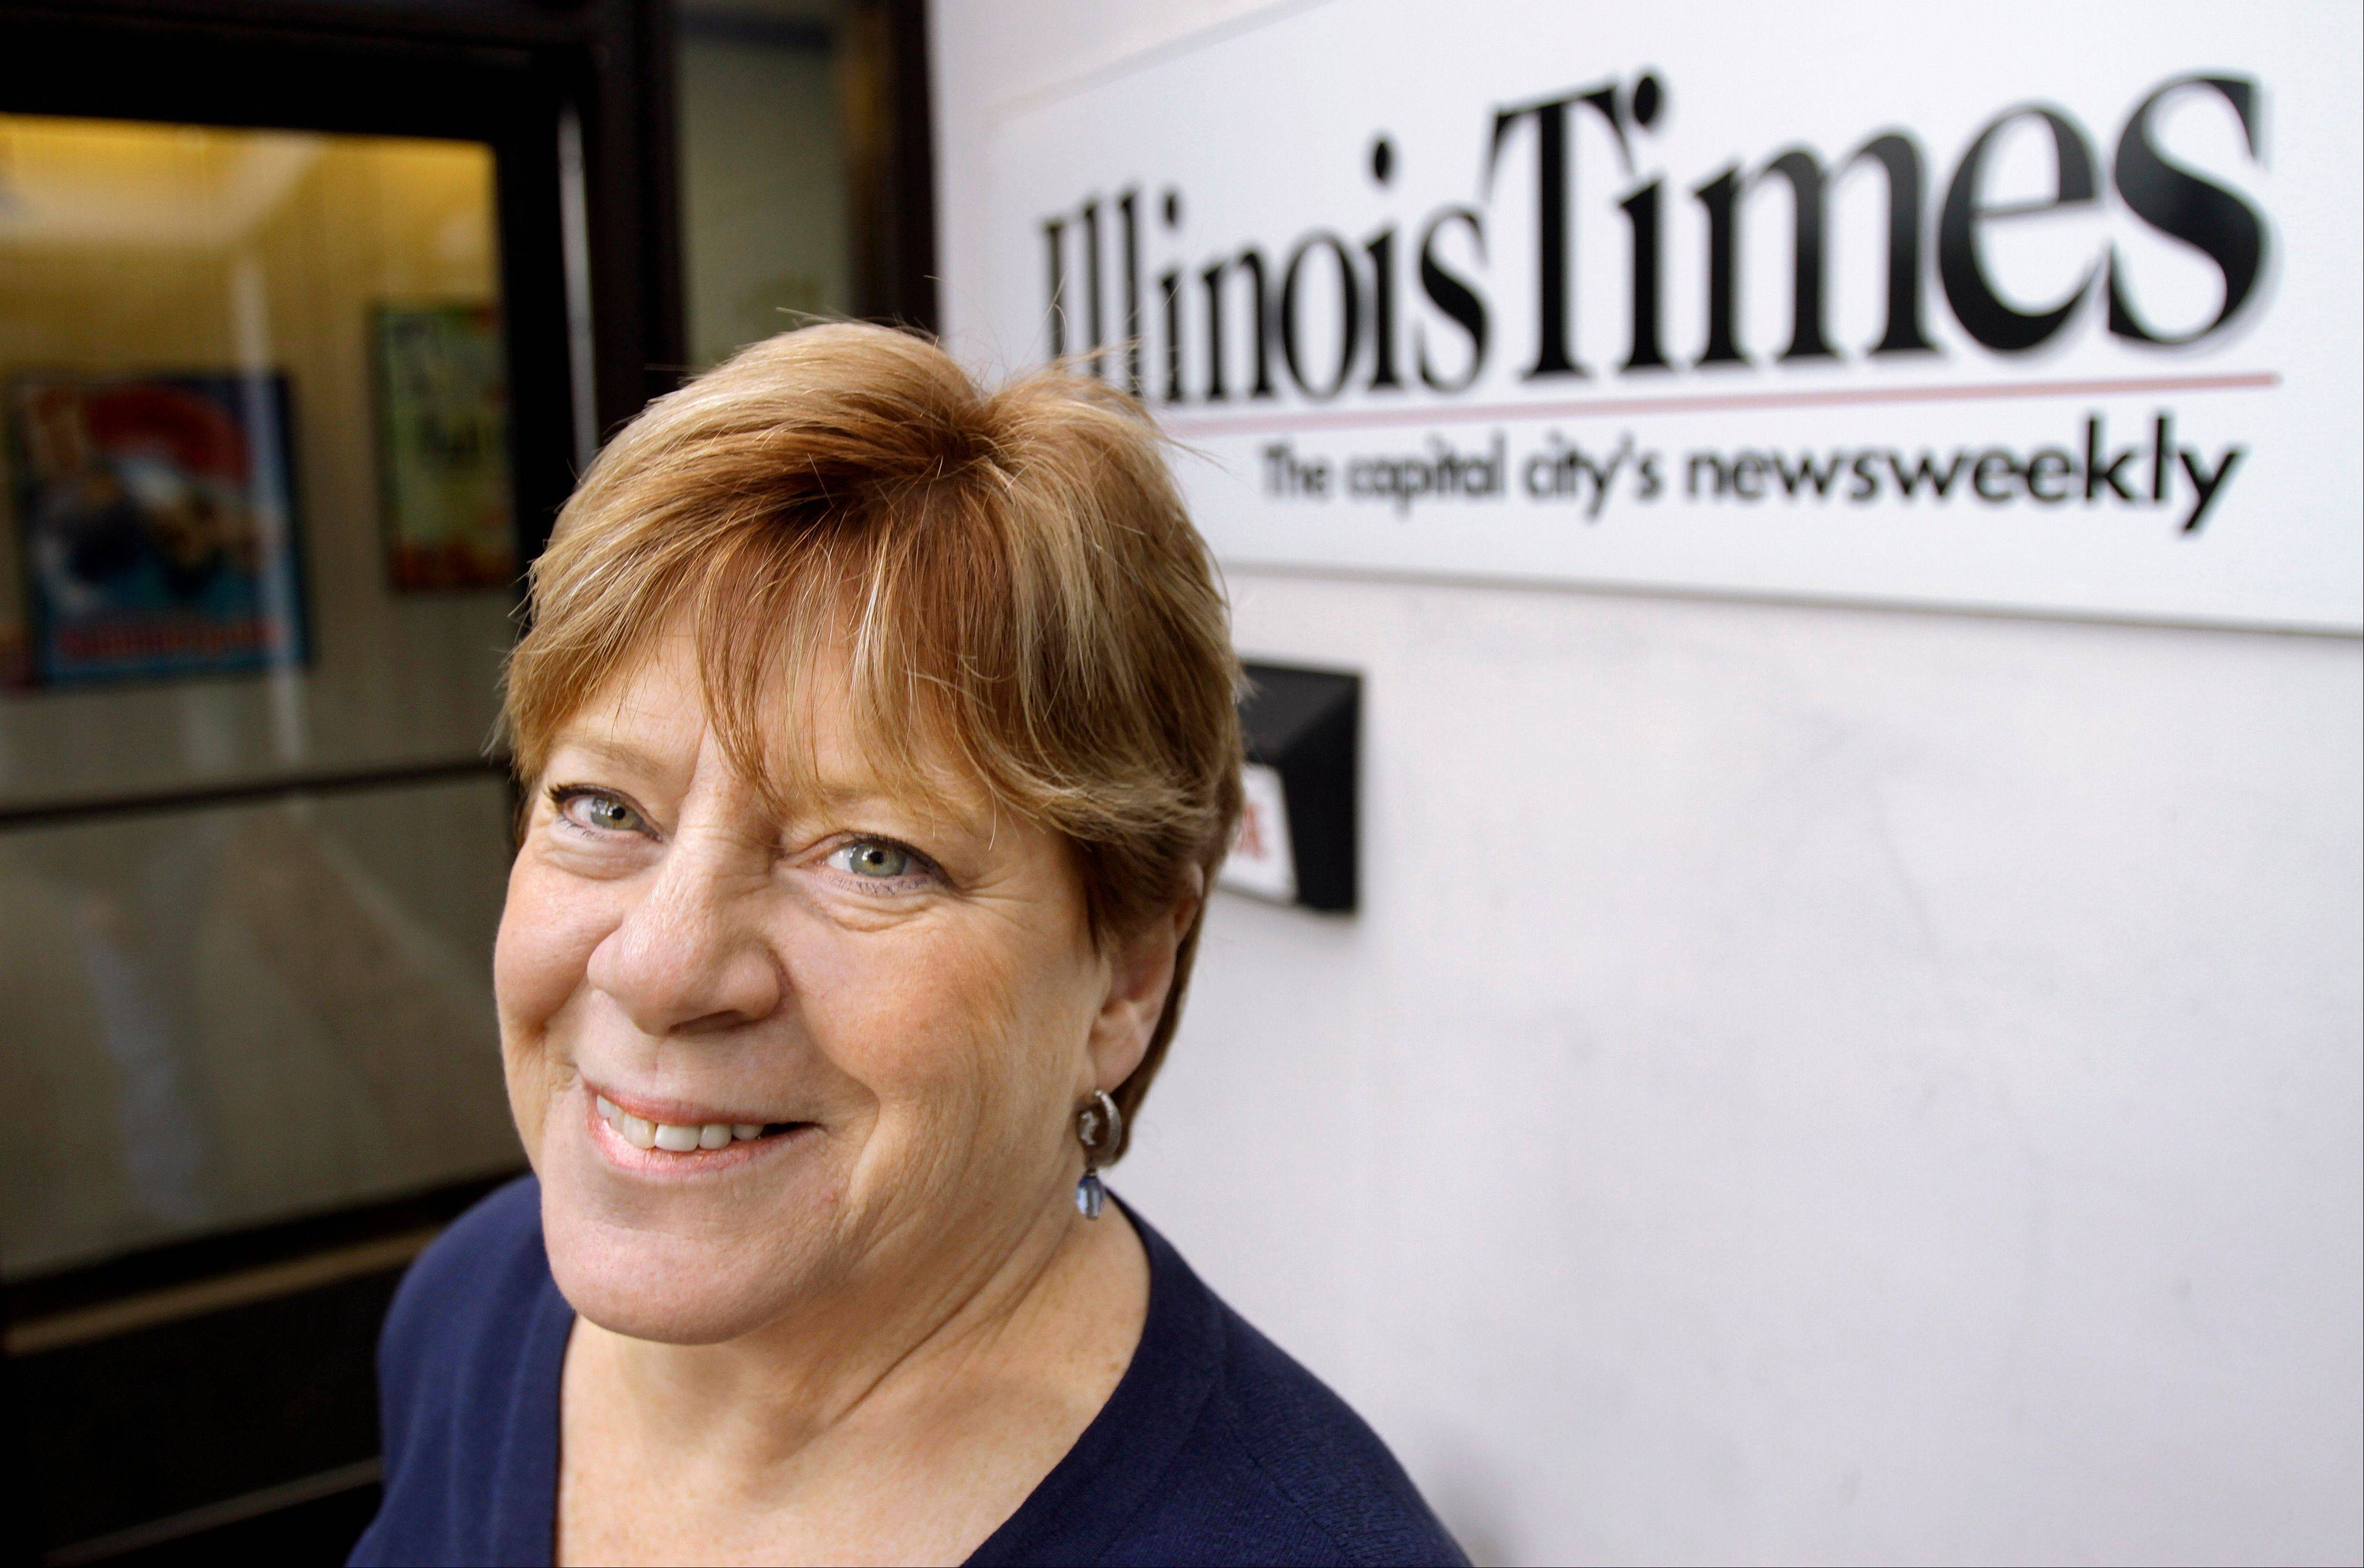 Sharon Whalen, Publisher of the Illinois Times, at work in Springfield. Whalen's small business, a weekly alternative newspaper, got a tax credit to help with cost of providing health care coverage to her employees.